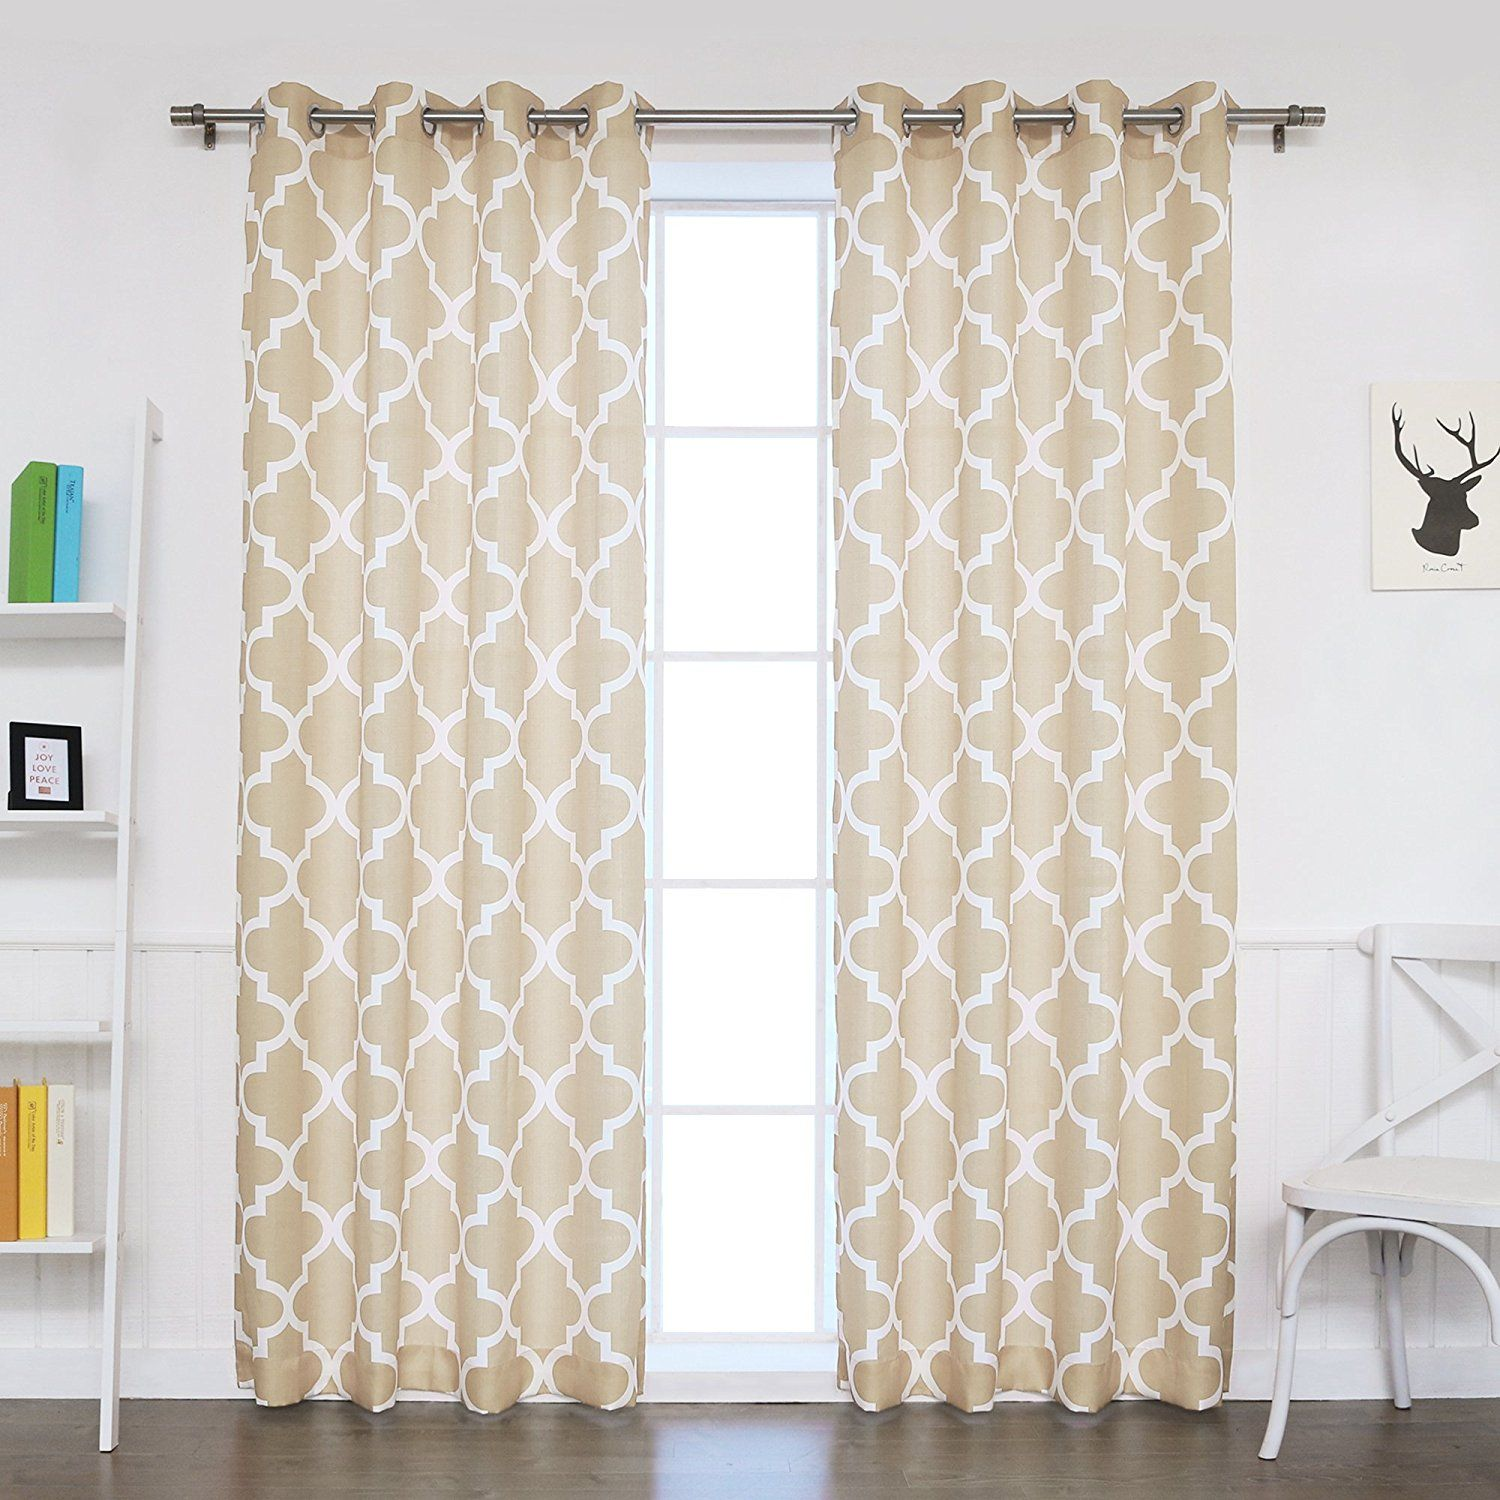 Amazoncom Best Home Fashion Oxford Basketweave Moroccan Print Curtains Stainless